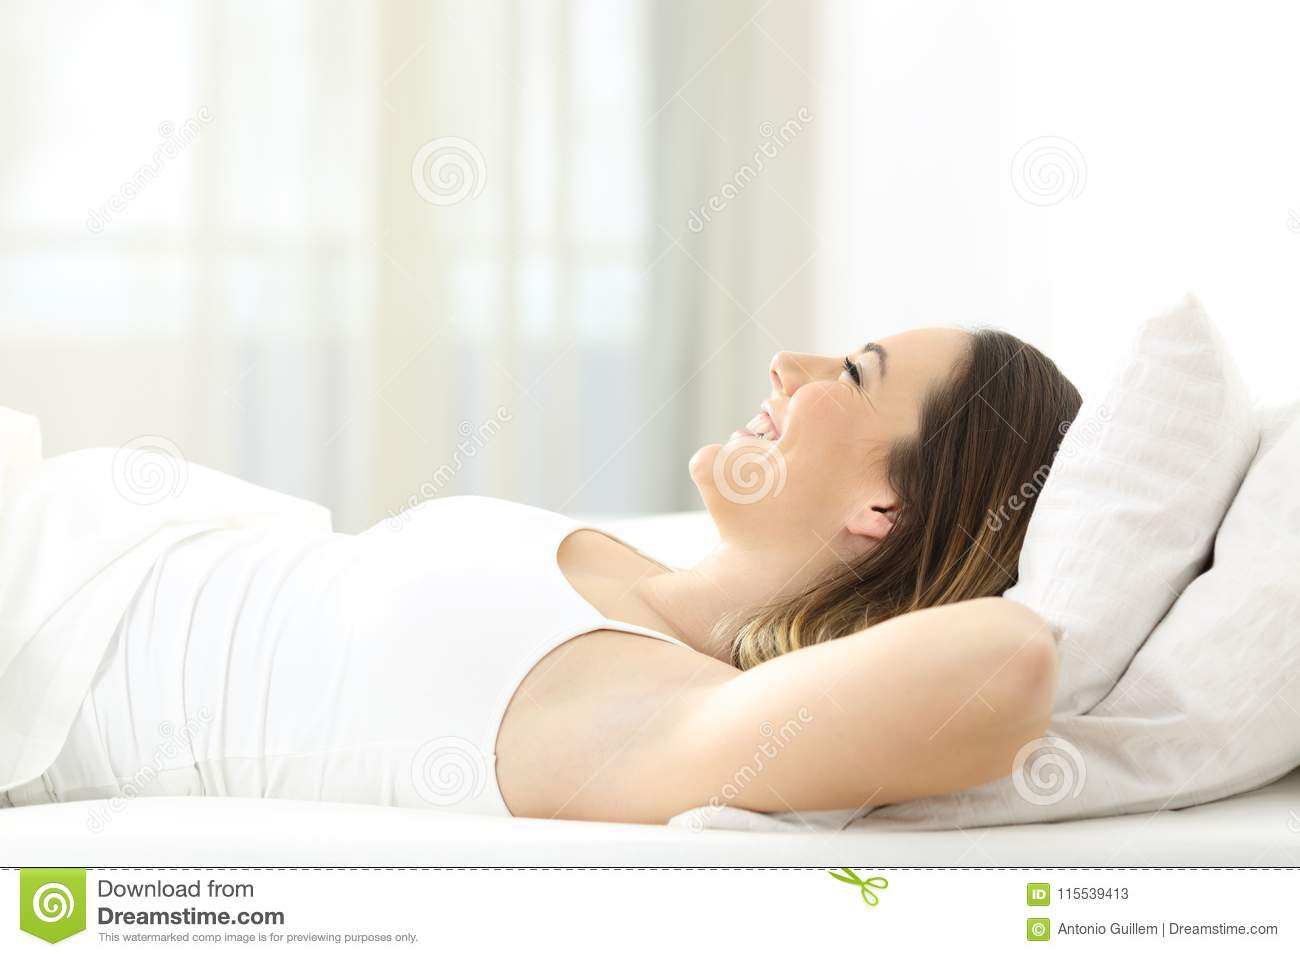 Happy woman resting lying on a bed looking up